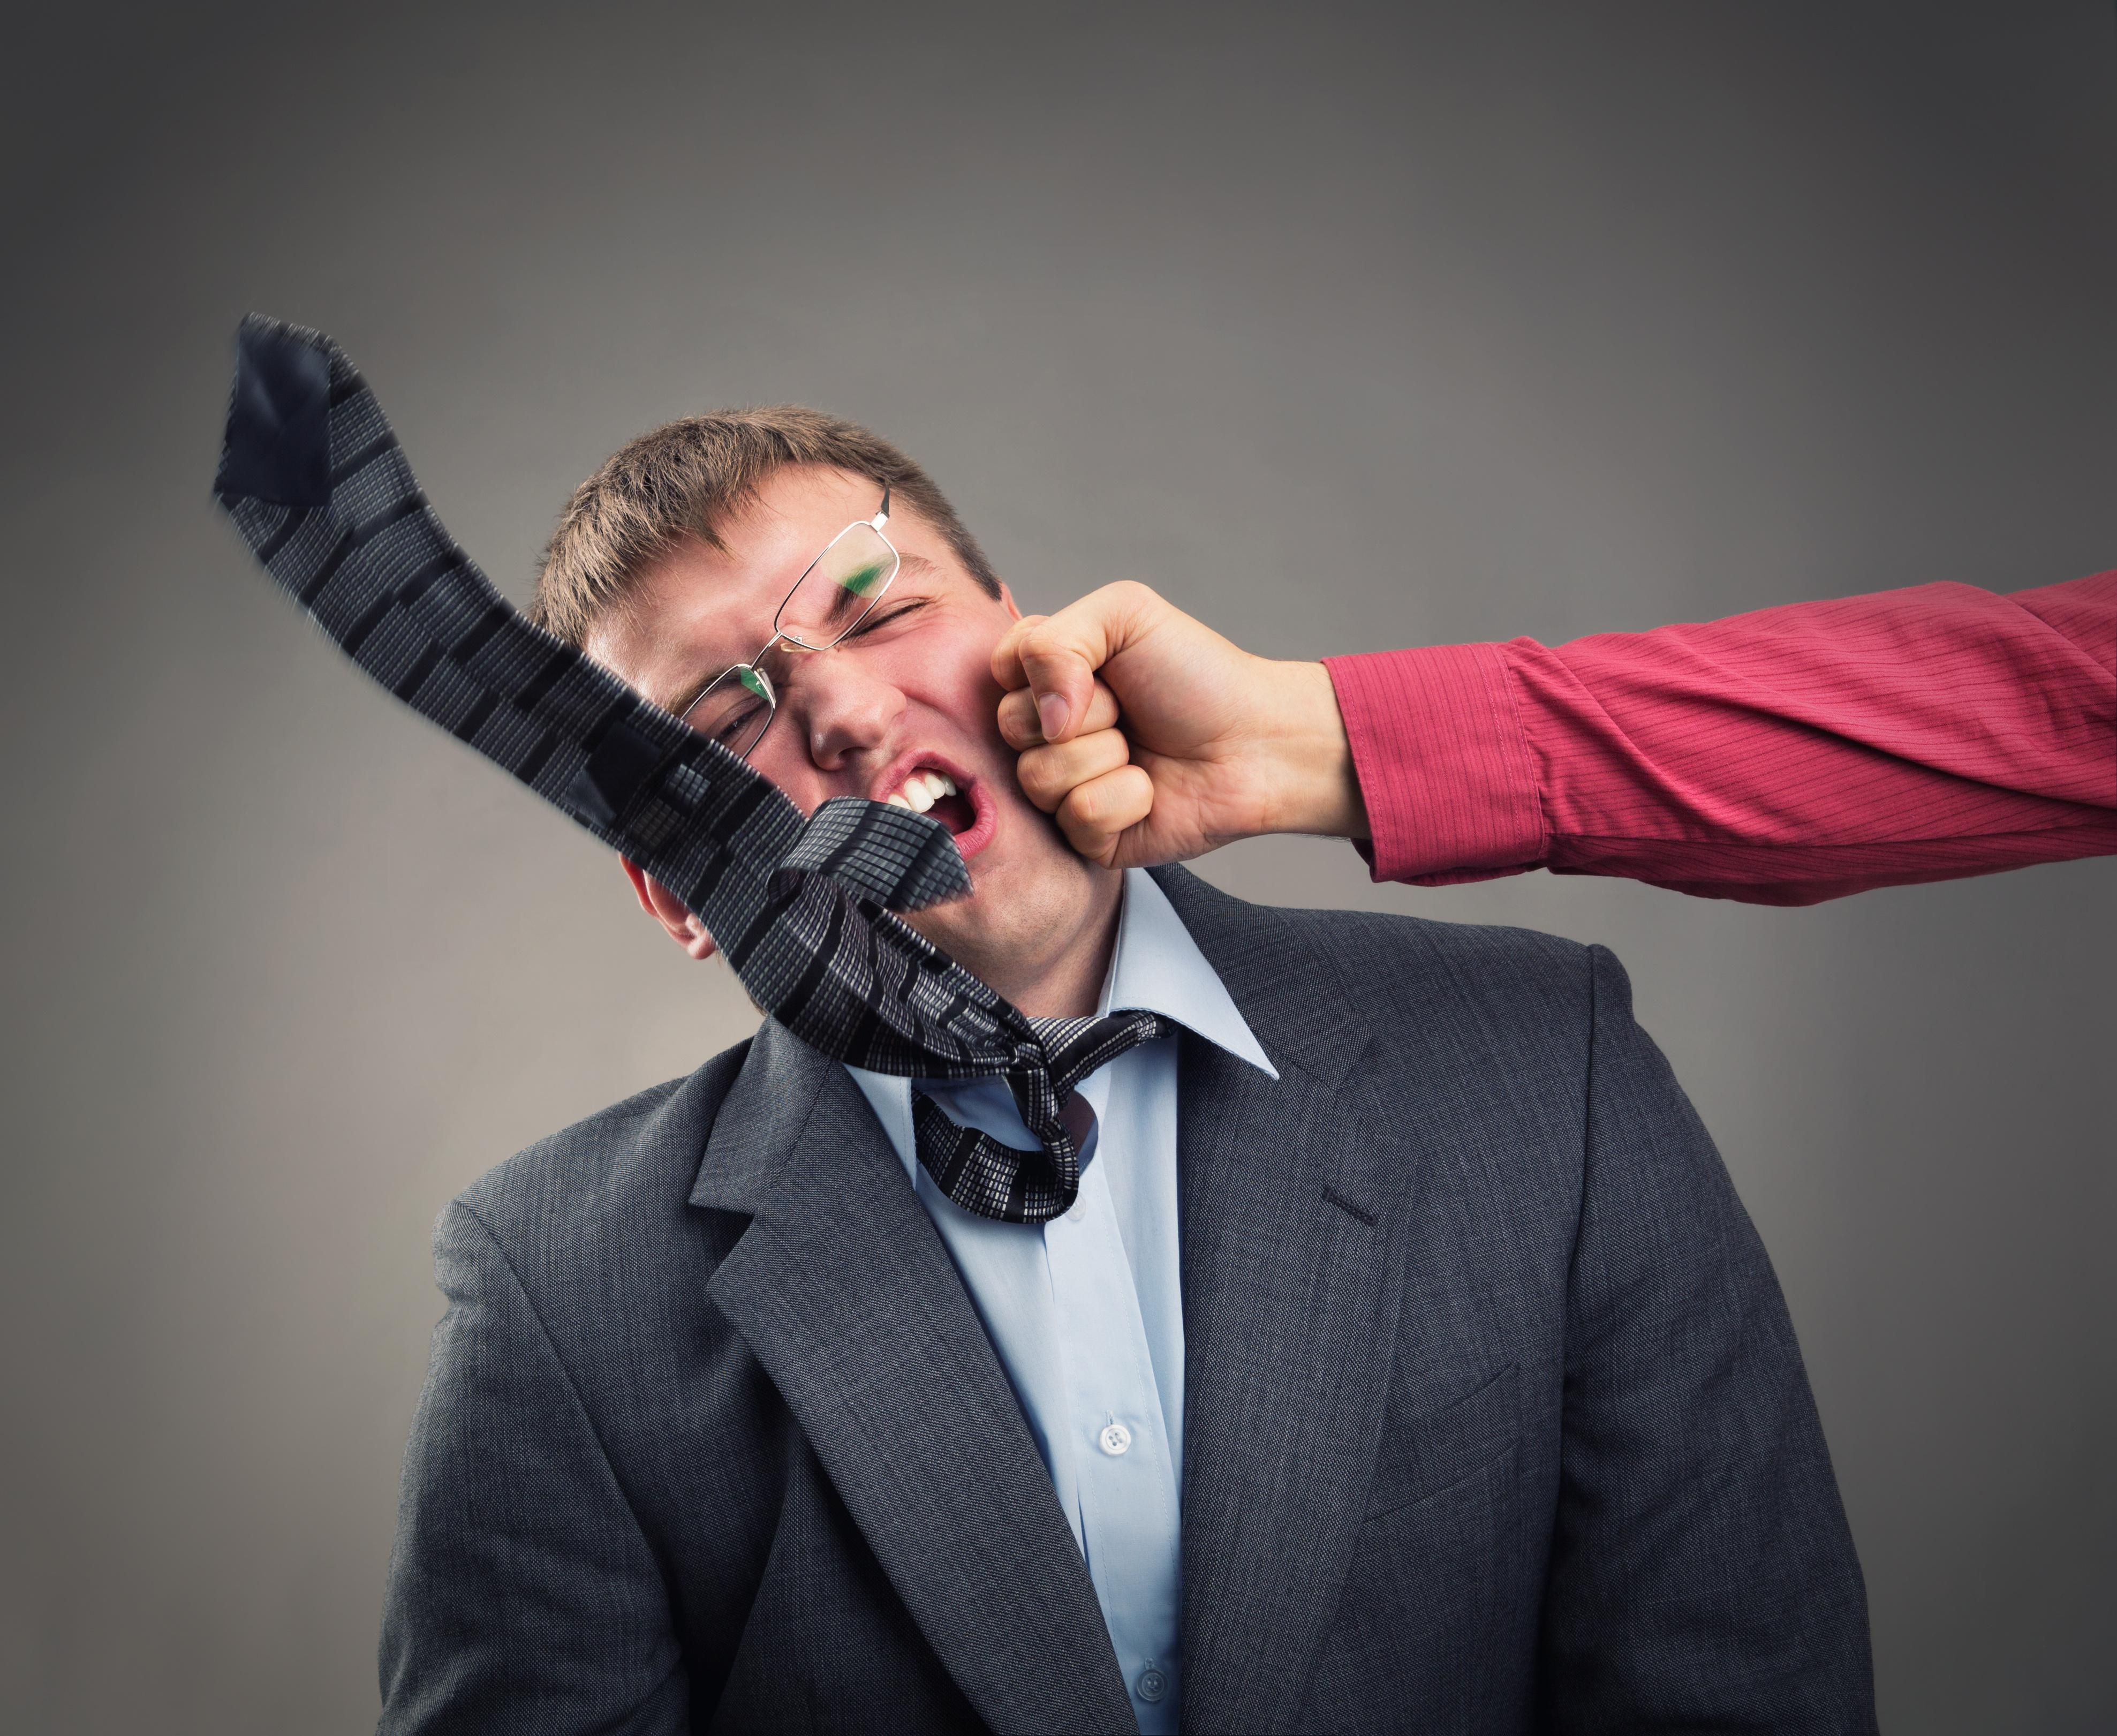 office worker fight, punch, office fight